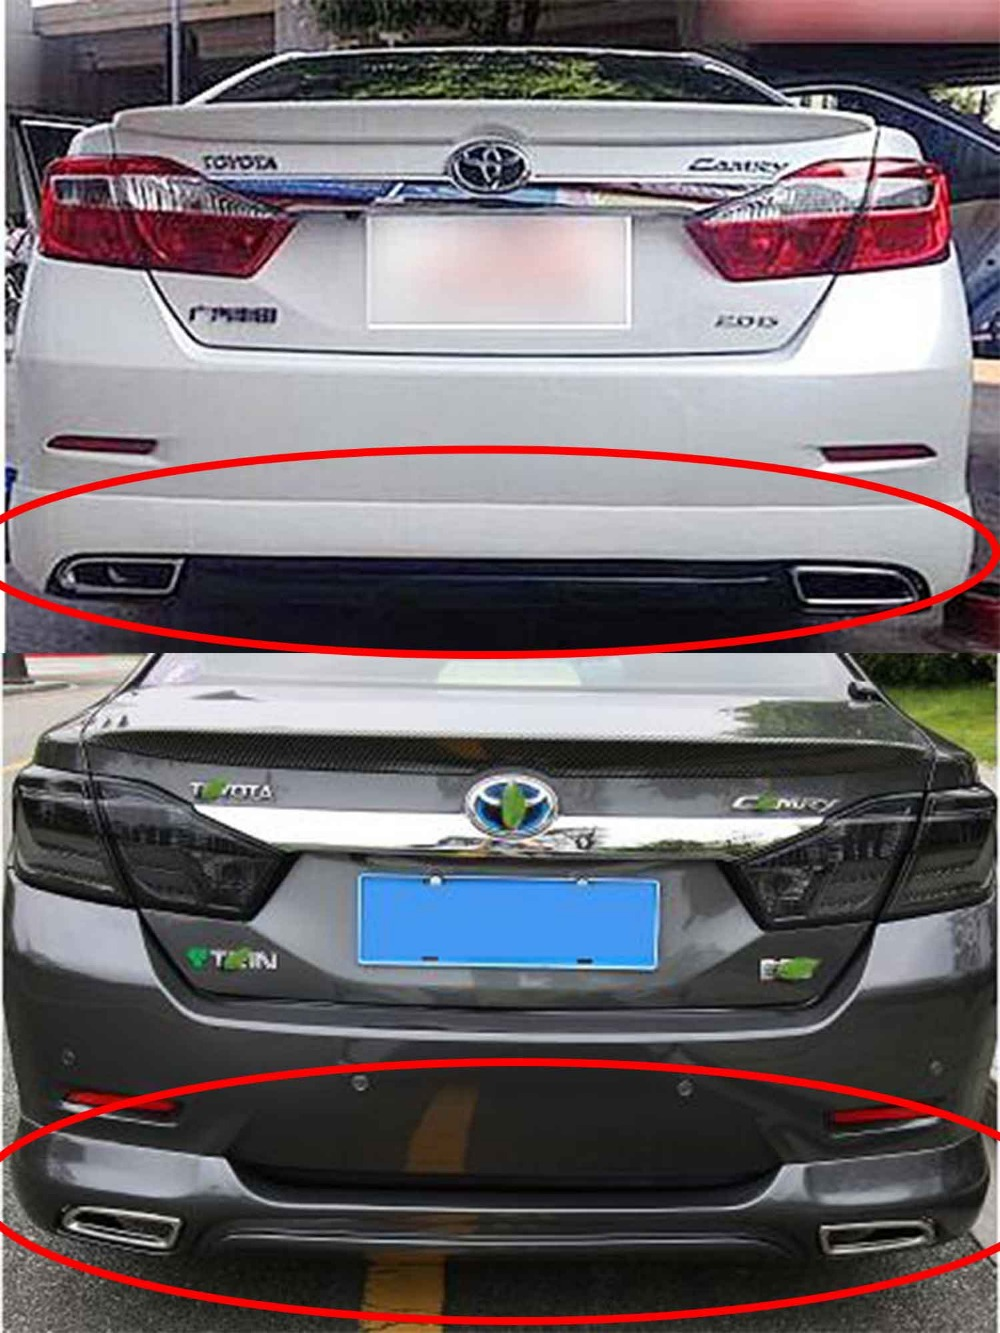 For toyota camry 2012 14 Rear Bumper Surround Body Spoiler Lip Modified-in  Bumpers from Automobiles & Motorcycles on Aliexpress.com | Alibaba Group